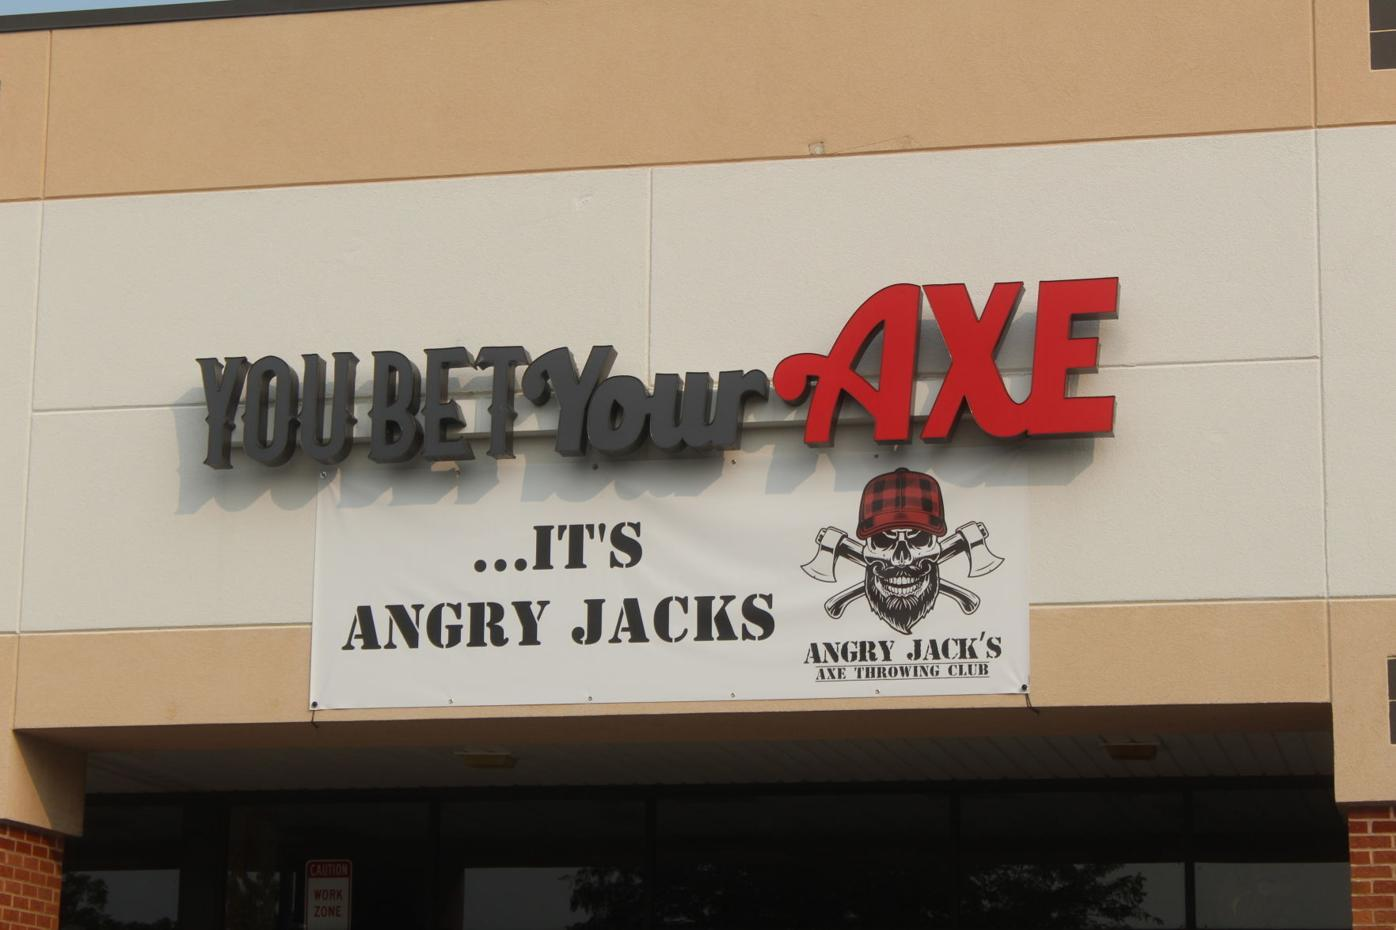 Angry Jack's Axe Throwing Club comes to Elkton